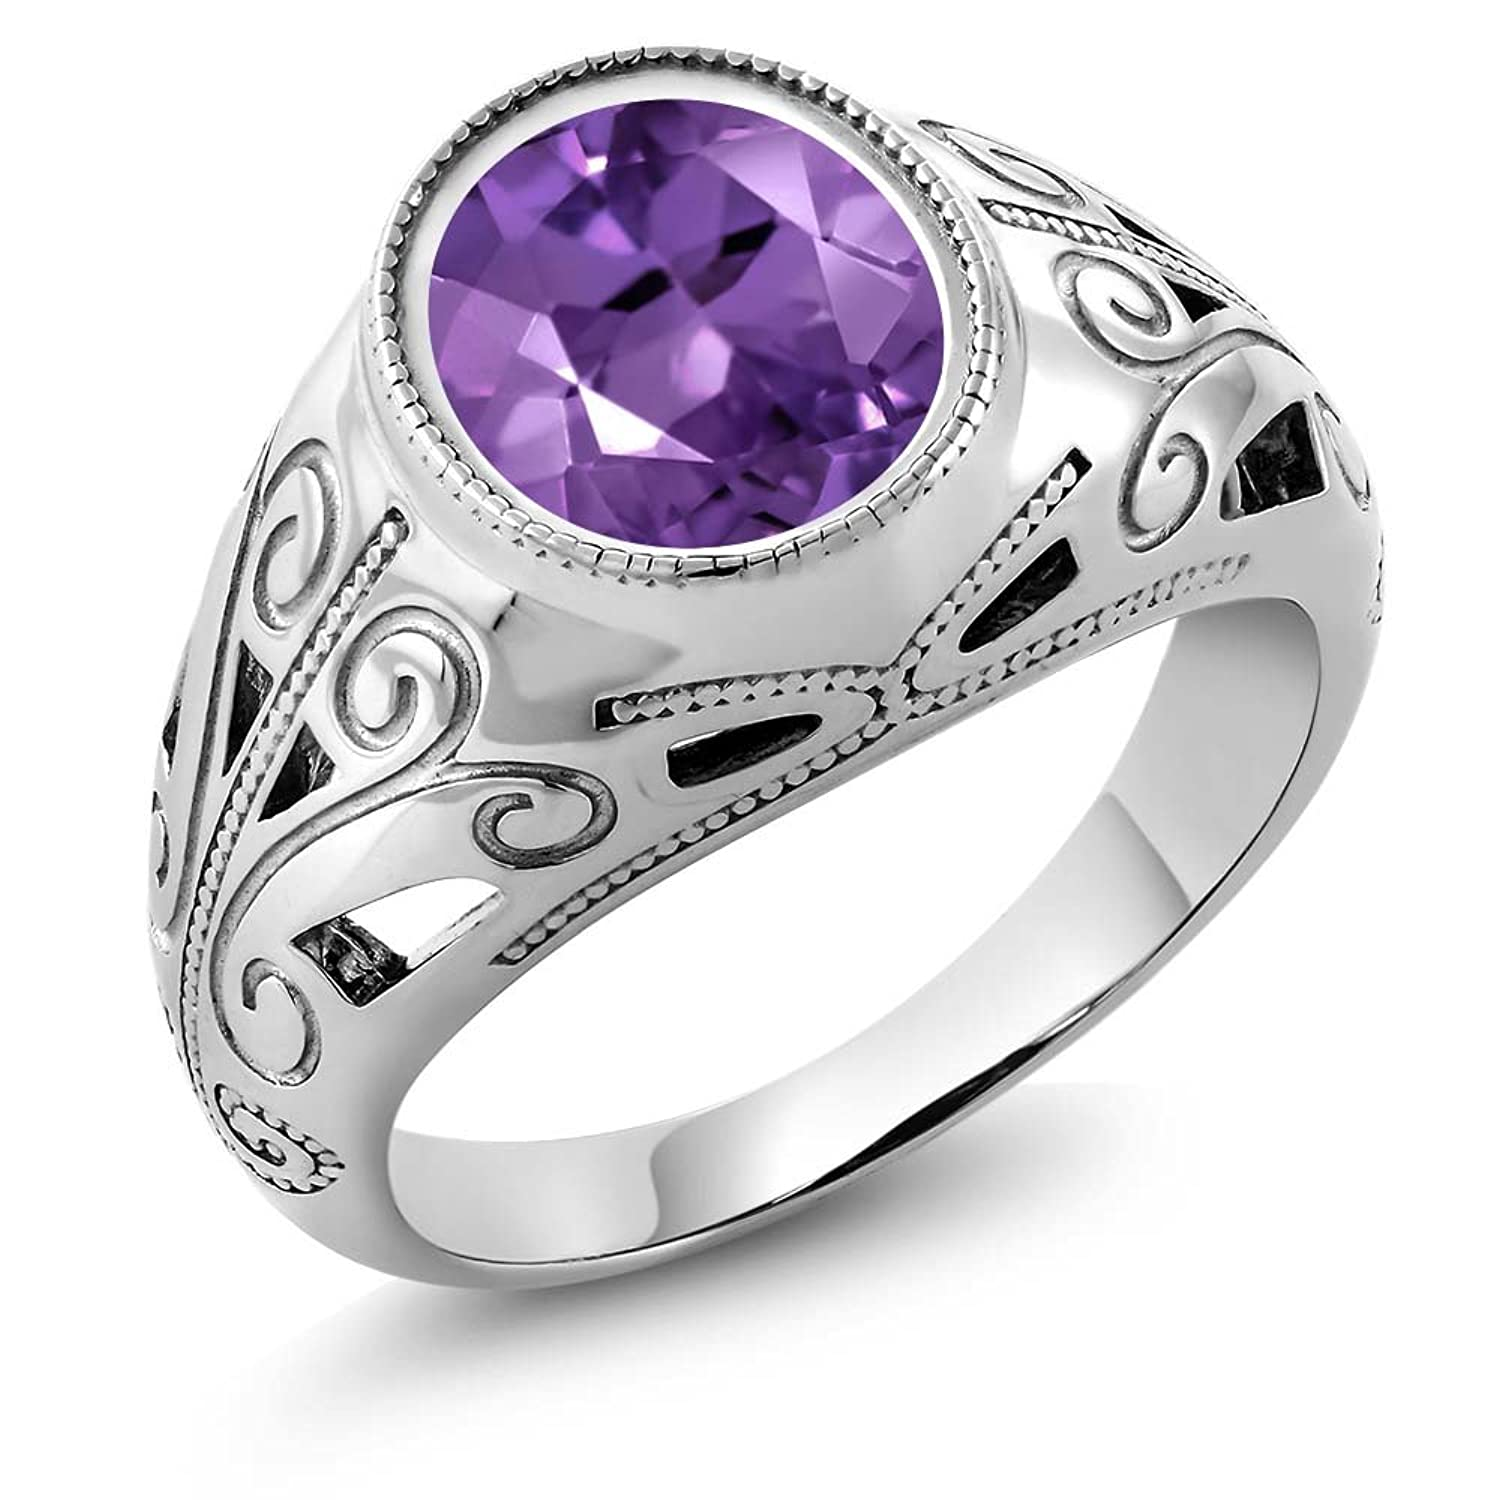 for sterling bmman amethyst women gemstone i rings zuan ring natural jewelry izuan silver cut checkerboard